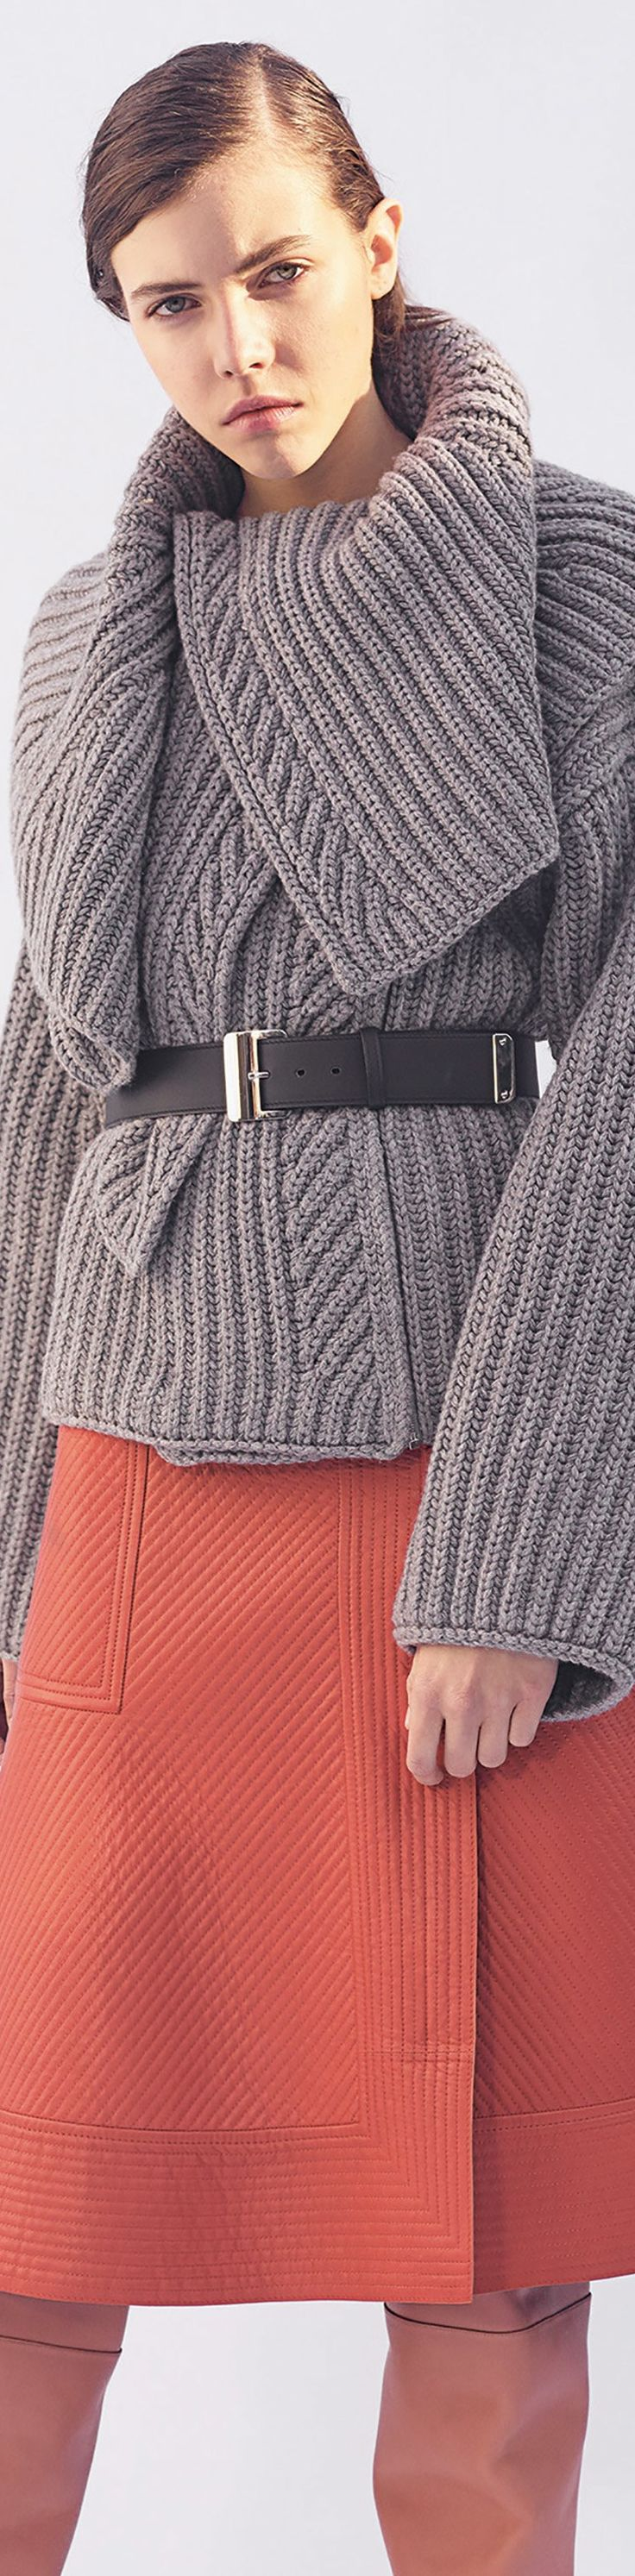 4867 best knitspiration & crochet, too images on Pinterest ...